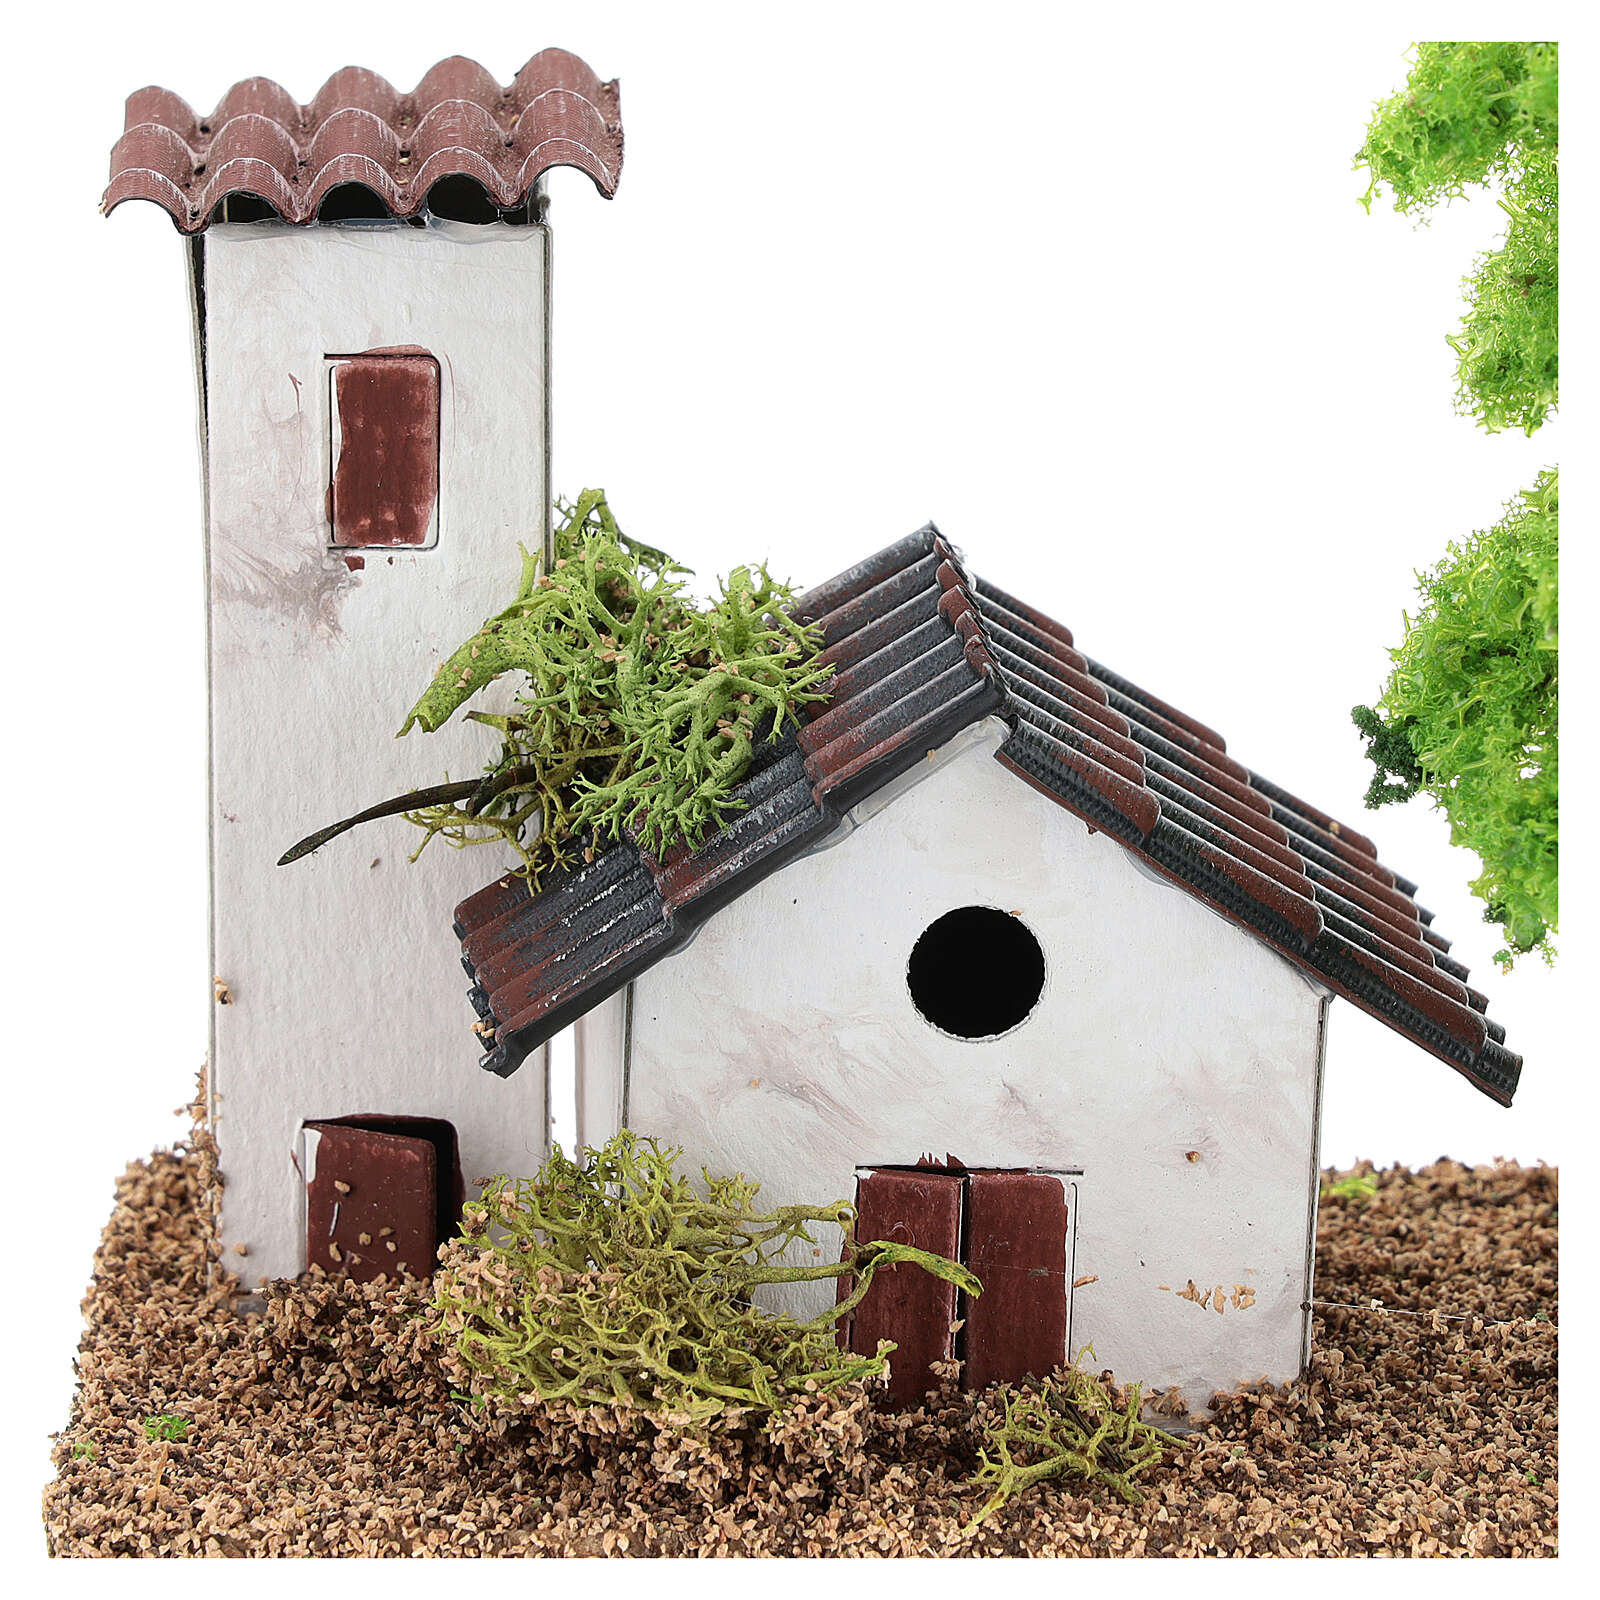 Miniature house with tower 10x15x10 cm, for 3-4 cm nativity 4